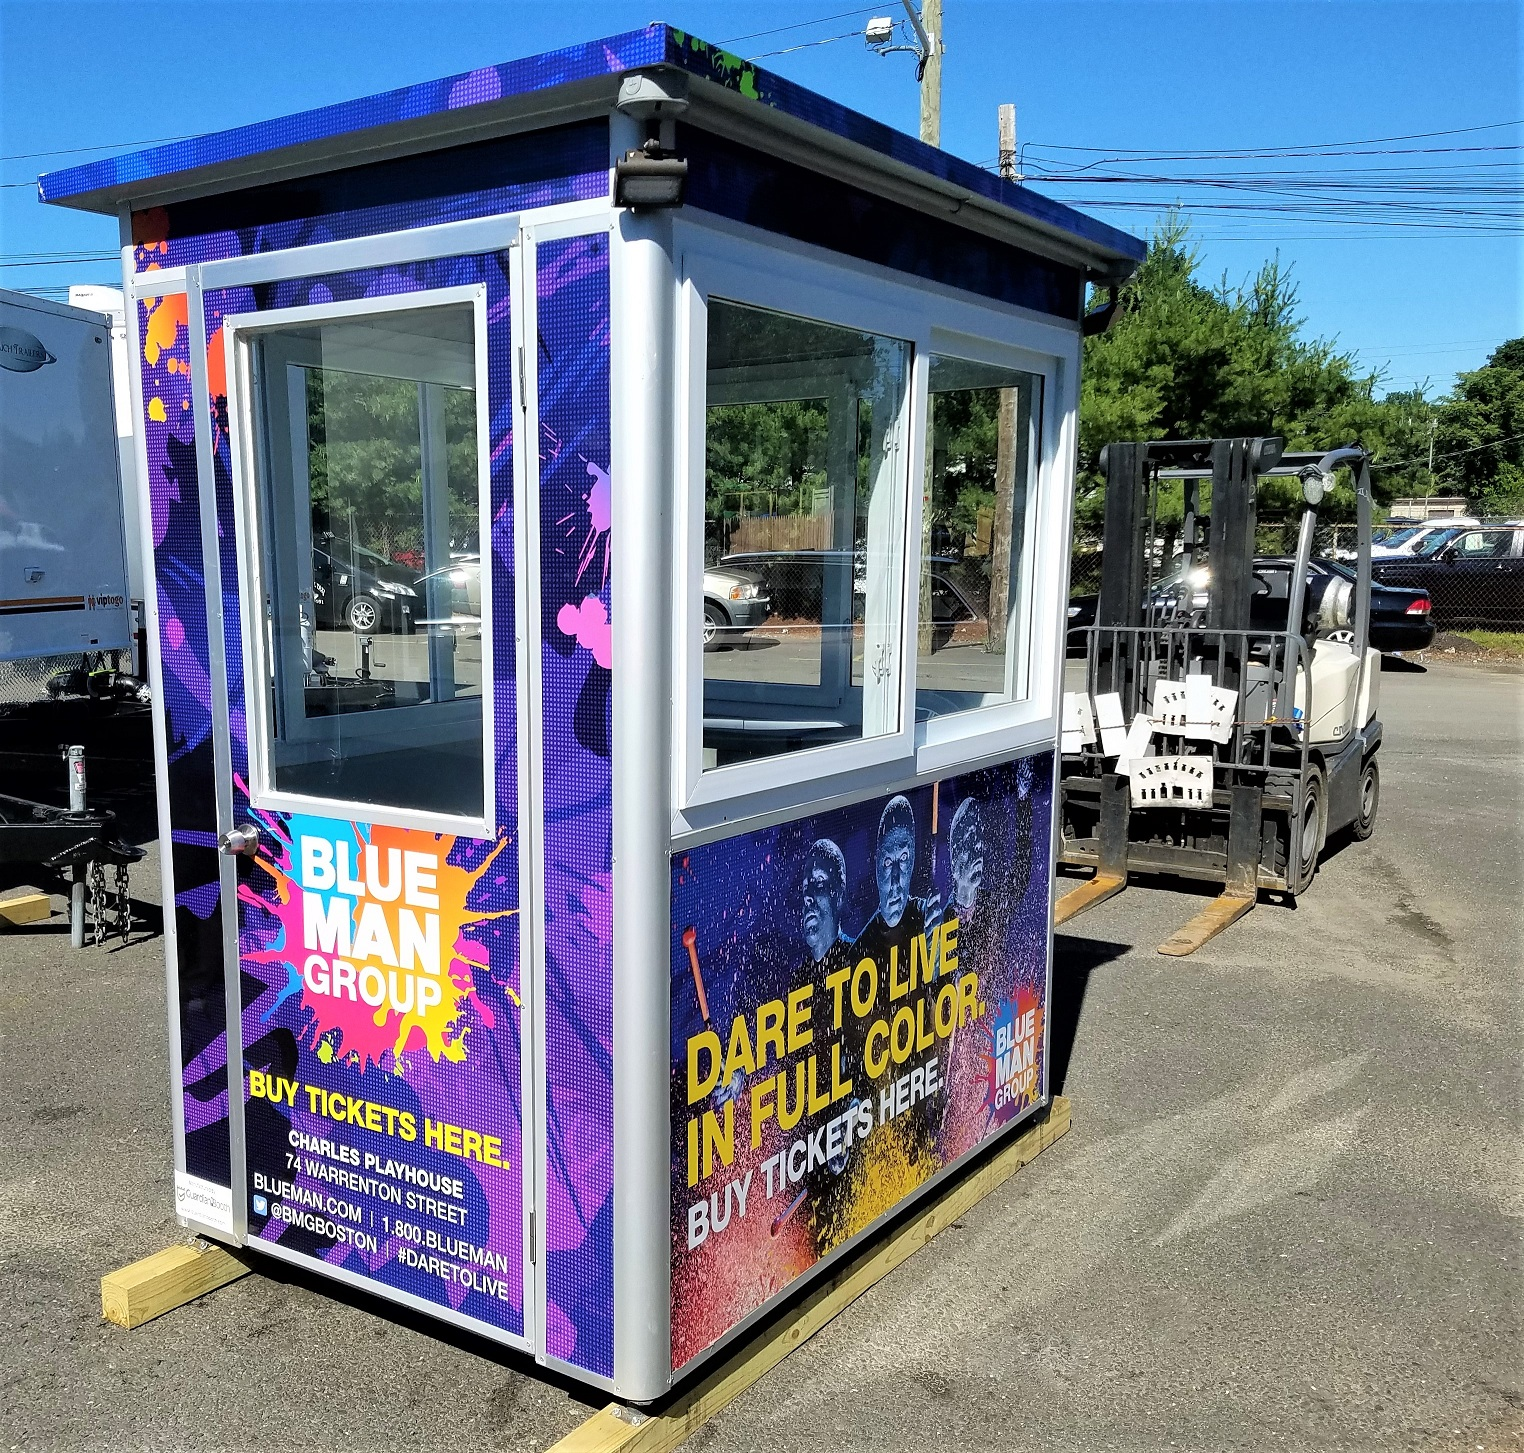 A colorful ticket booth for Blue Man Group Boston